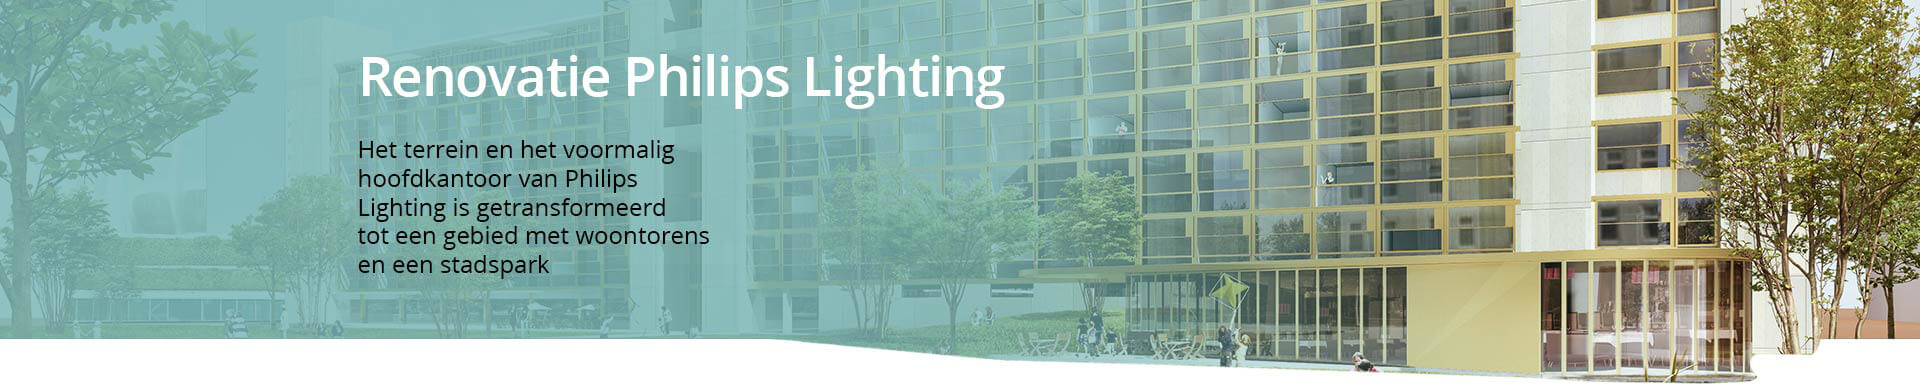 Renovatie Philips Lighting referentie project Econox